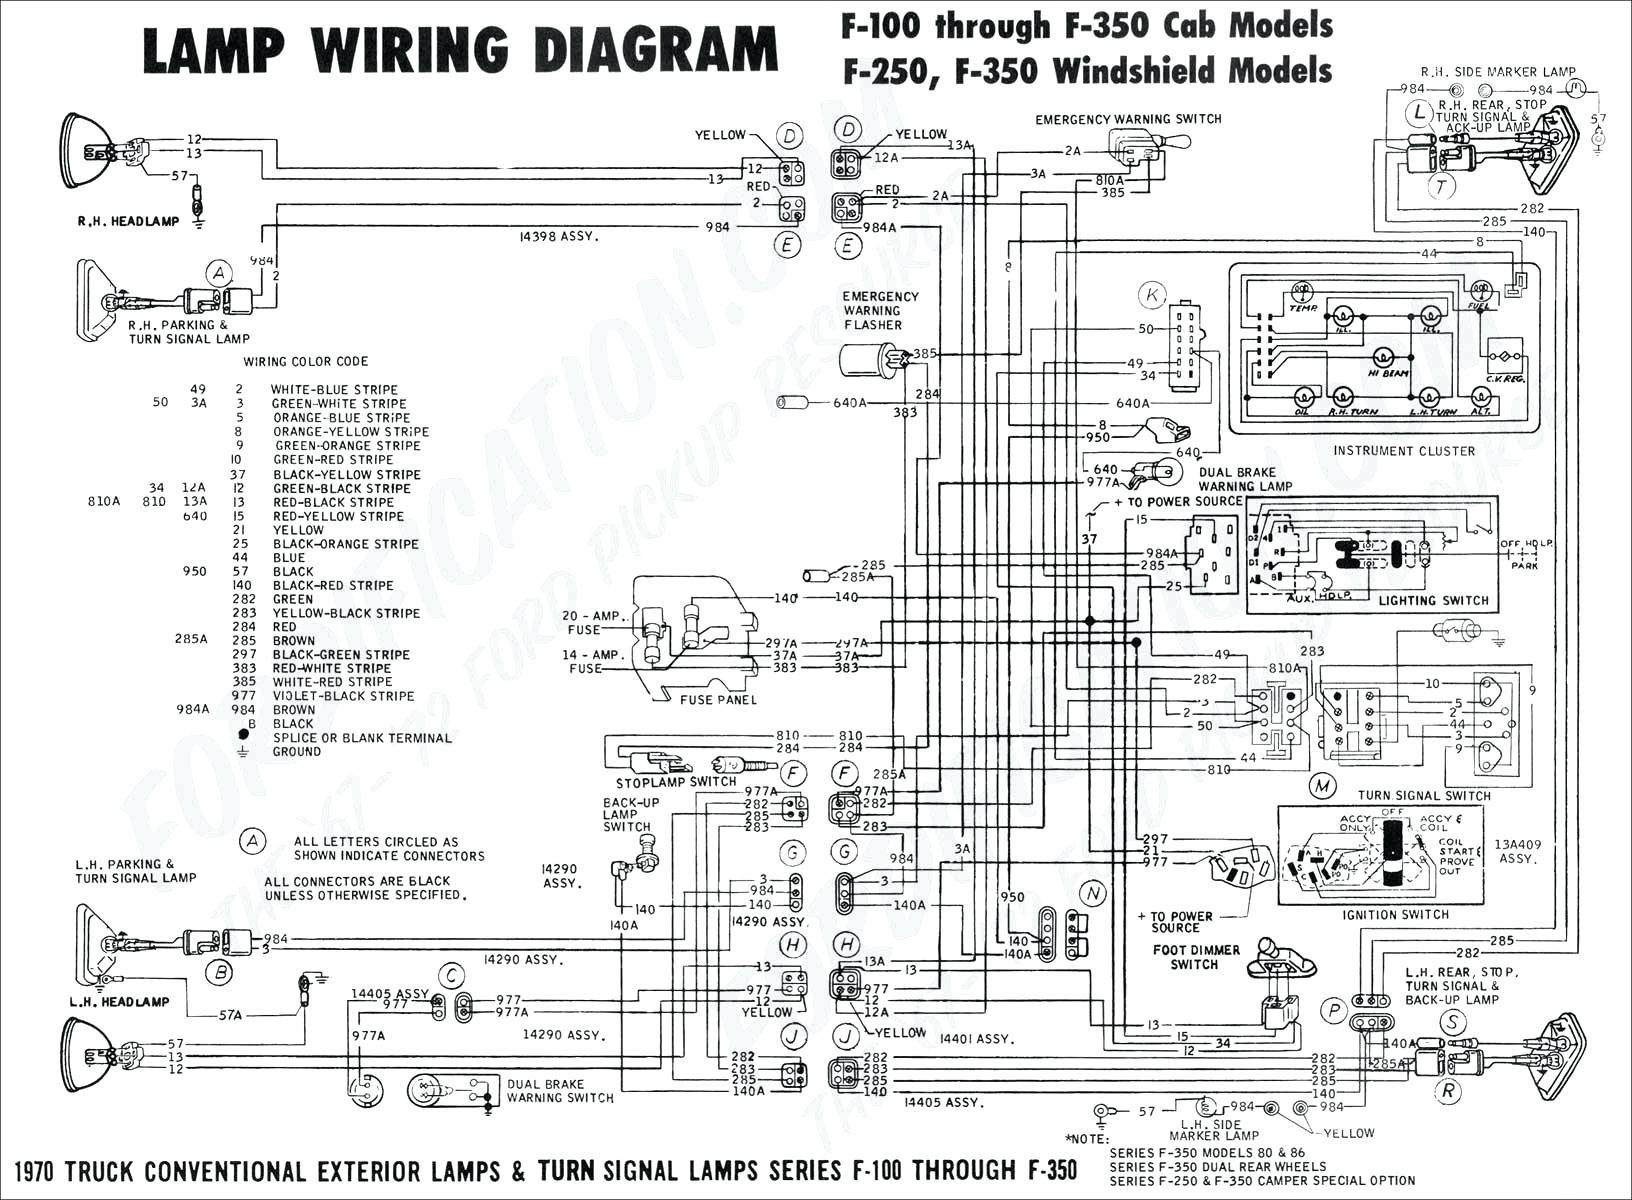 1997 ford f150 radio wiring diagram wiring diagram image rh mainetreasurechest com 1997 Ford Explorer Wiring Diagram Ford Wiring Harness Diagrams